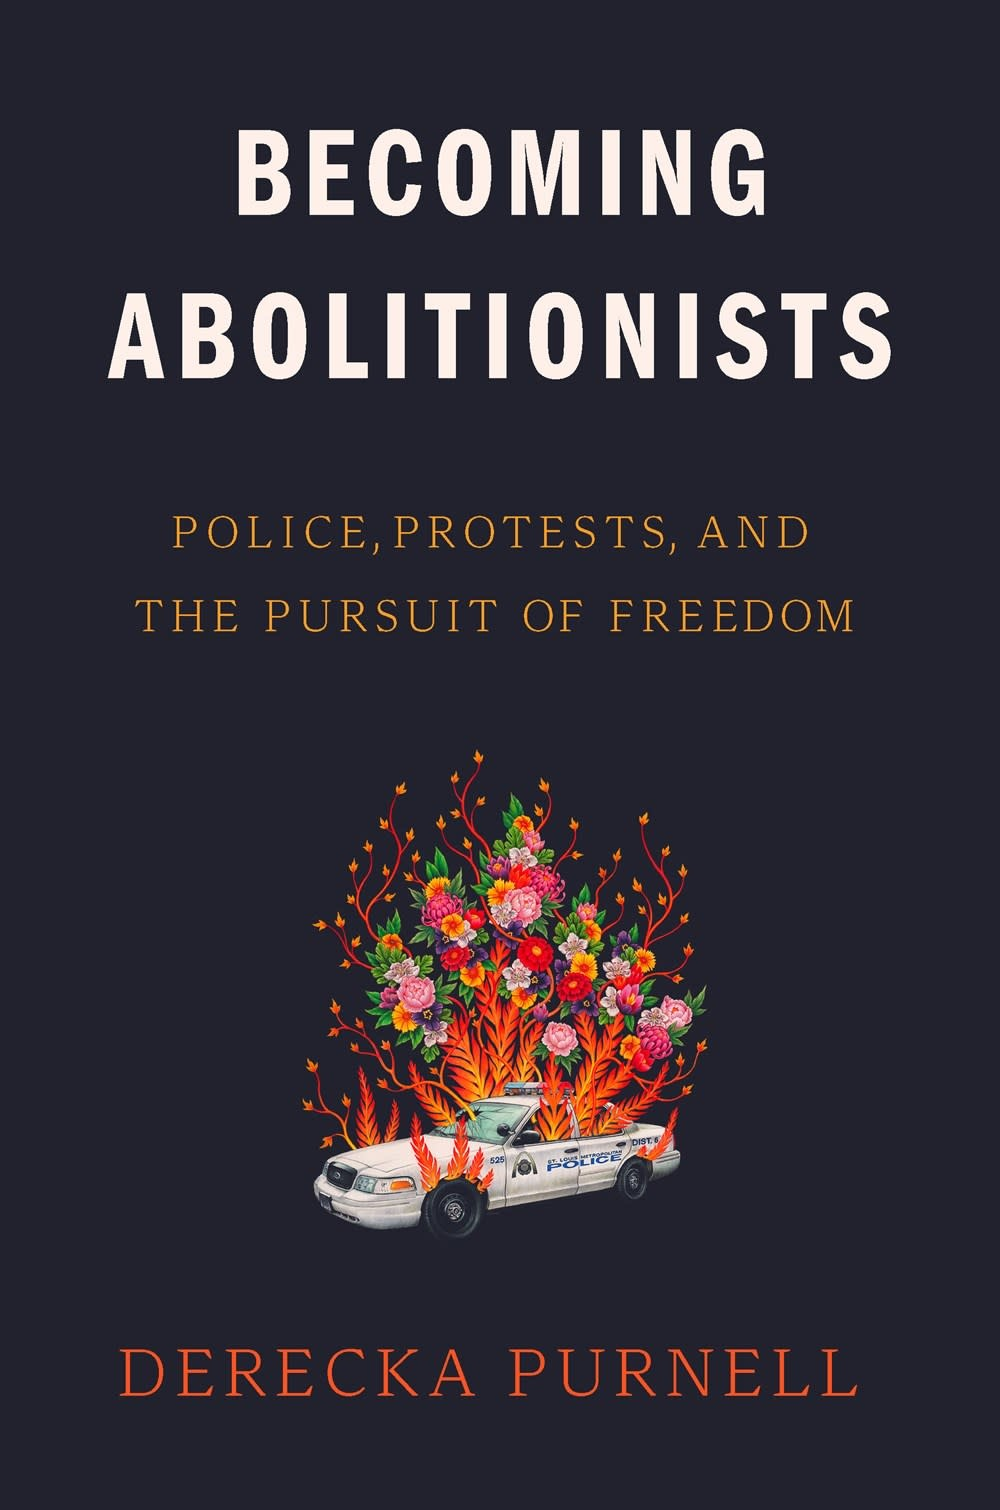 Becoming Abolitionists: Police, Protests, & the Pursuit of Freedom